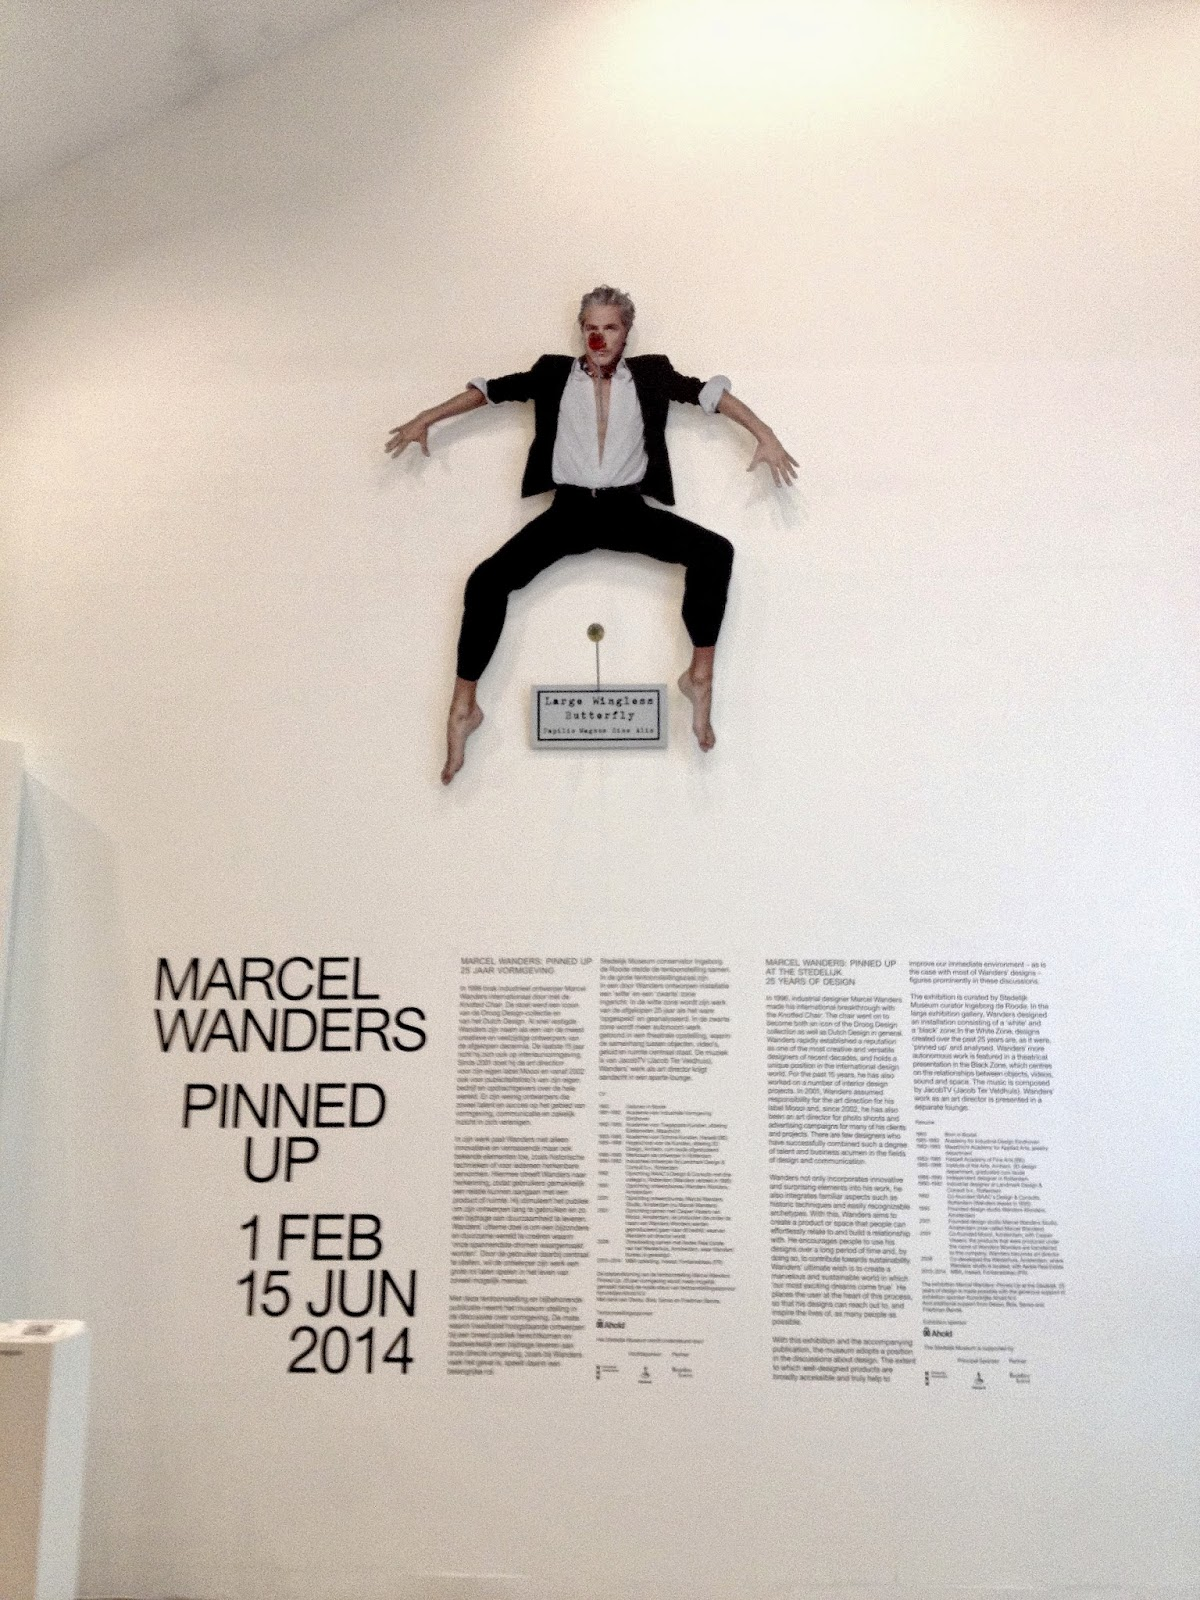 Marcel Wanders Pinned Up.Brankopopovicblog Marcel Wanders Pinned Up At The Stedelijk